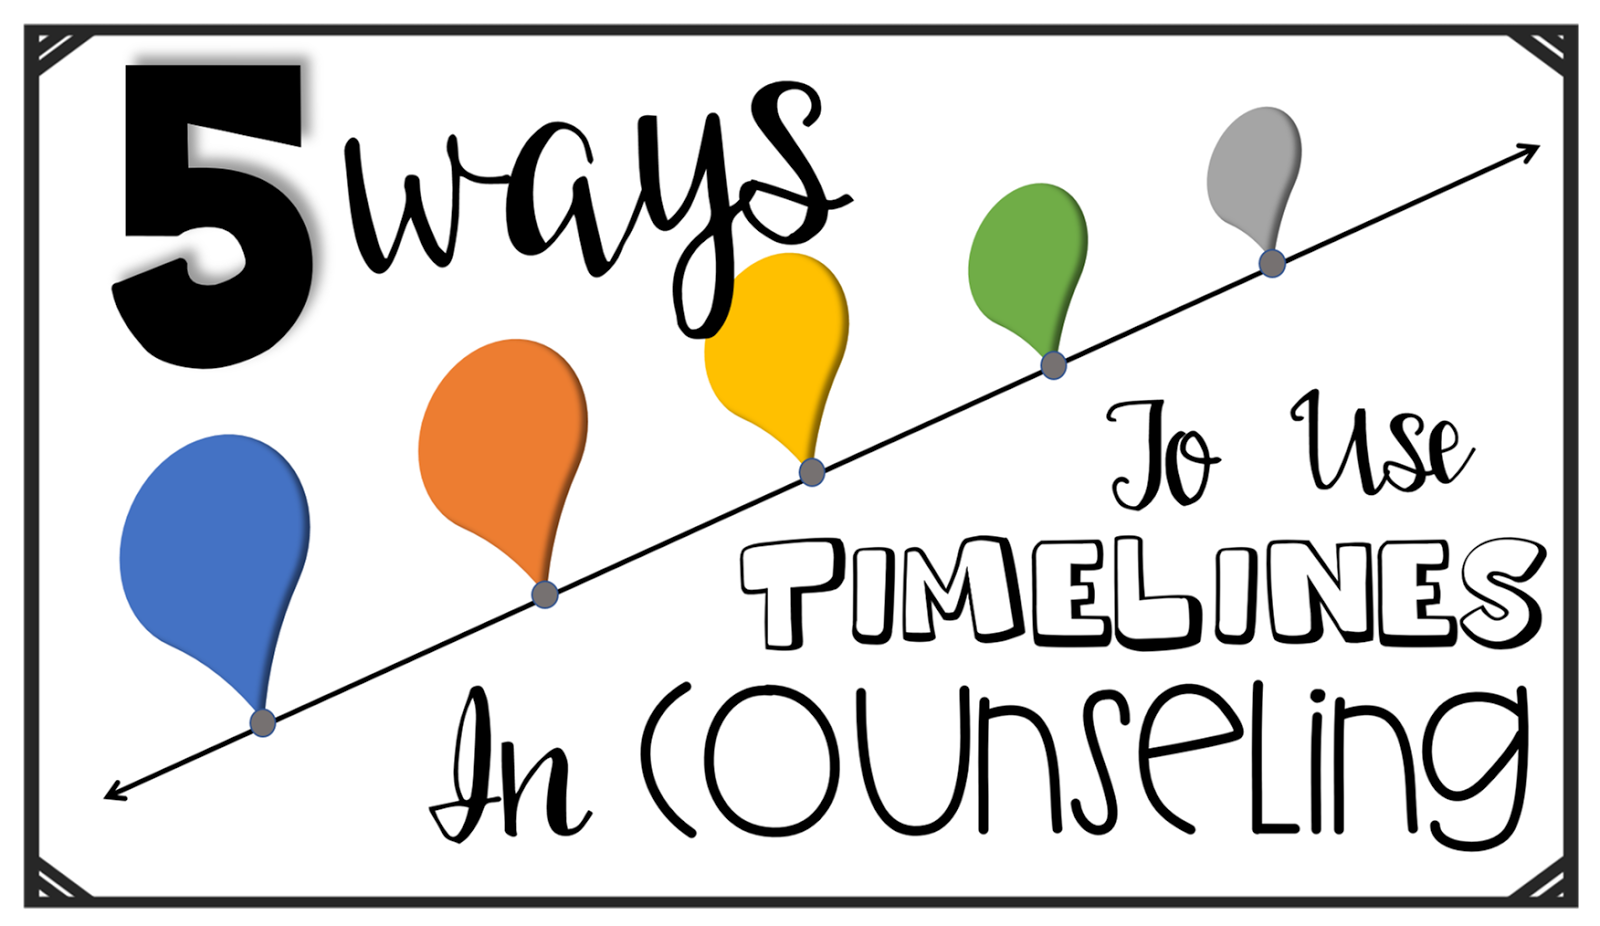 5 Ways To Use Timelines In Counseling